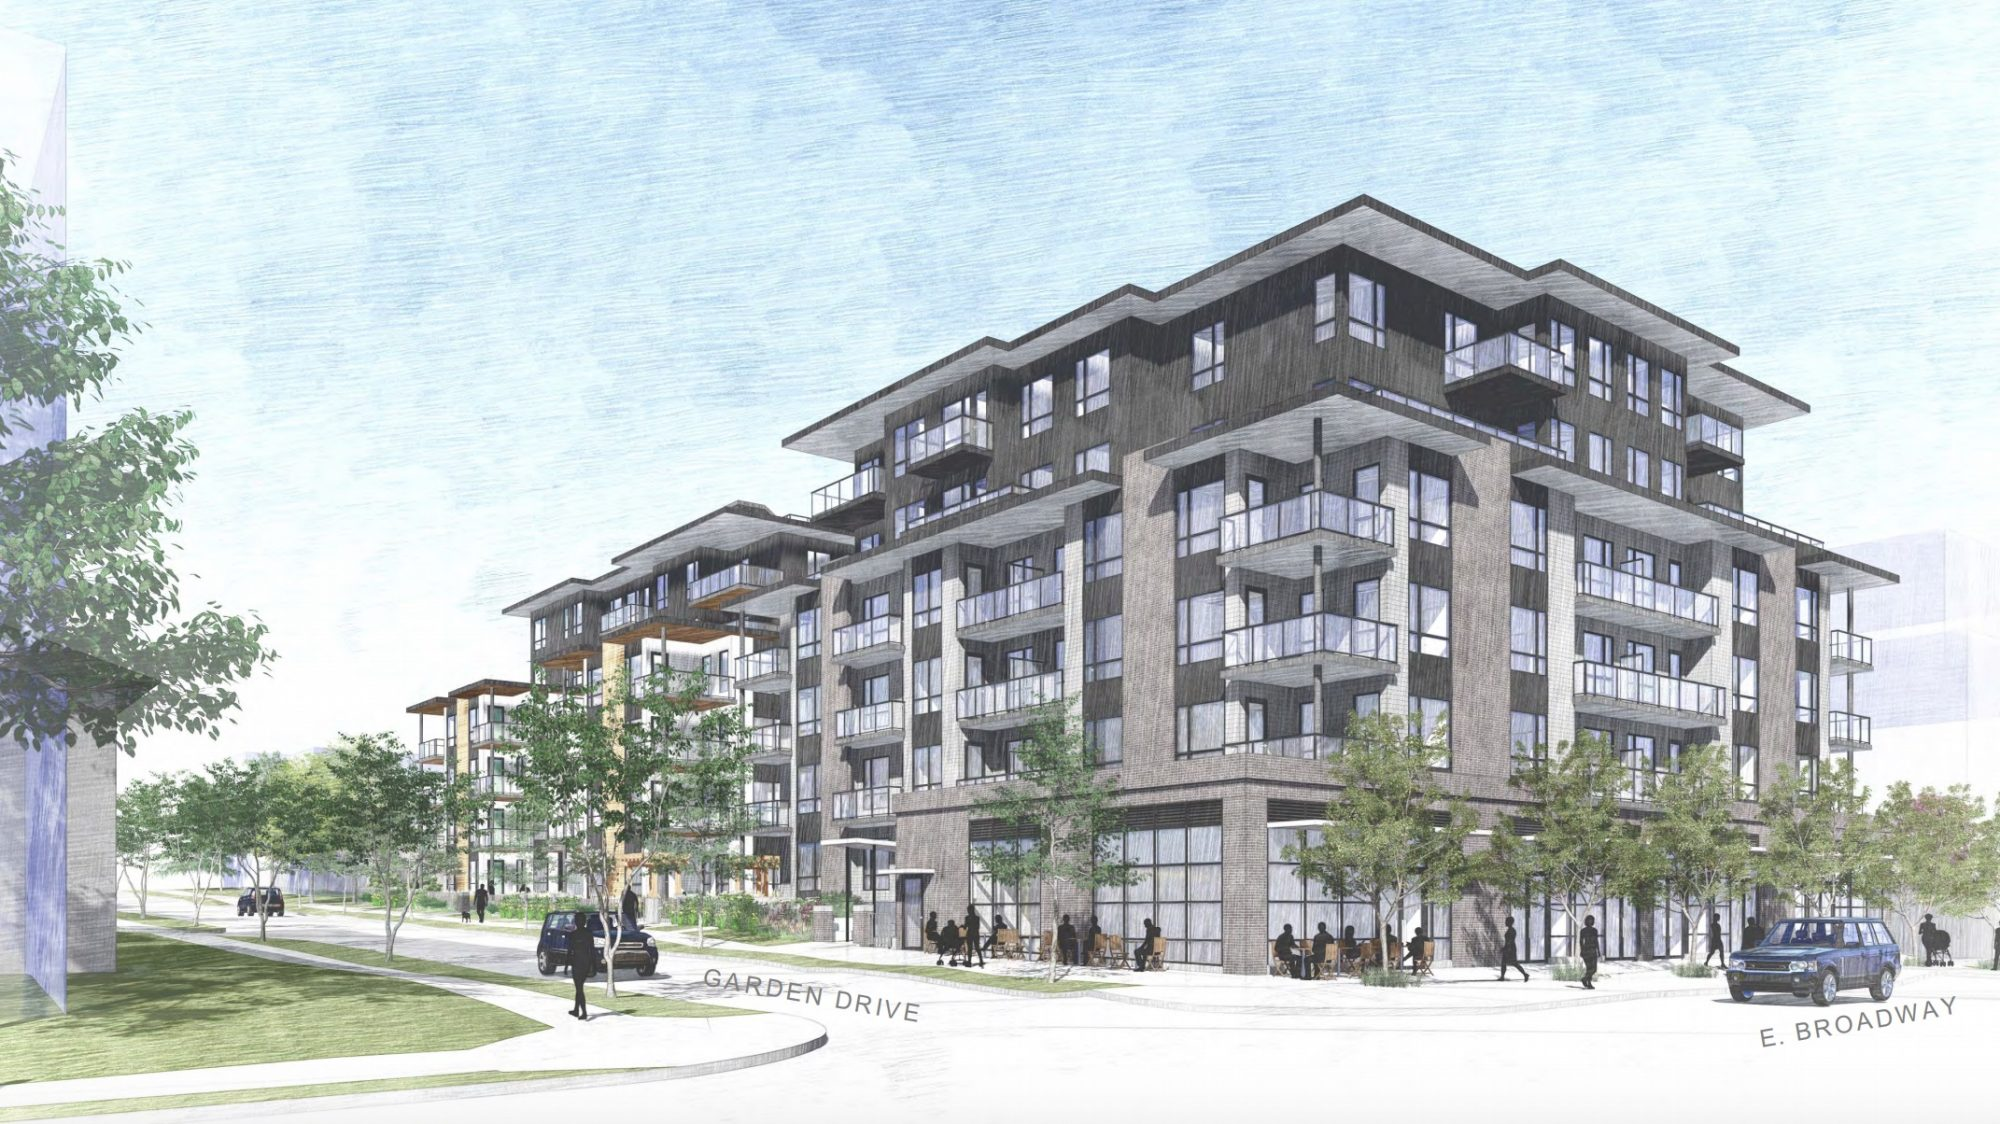 Two six-storey buildings slated for Garden Drive and East Broadway